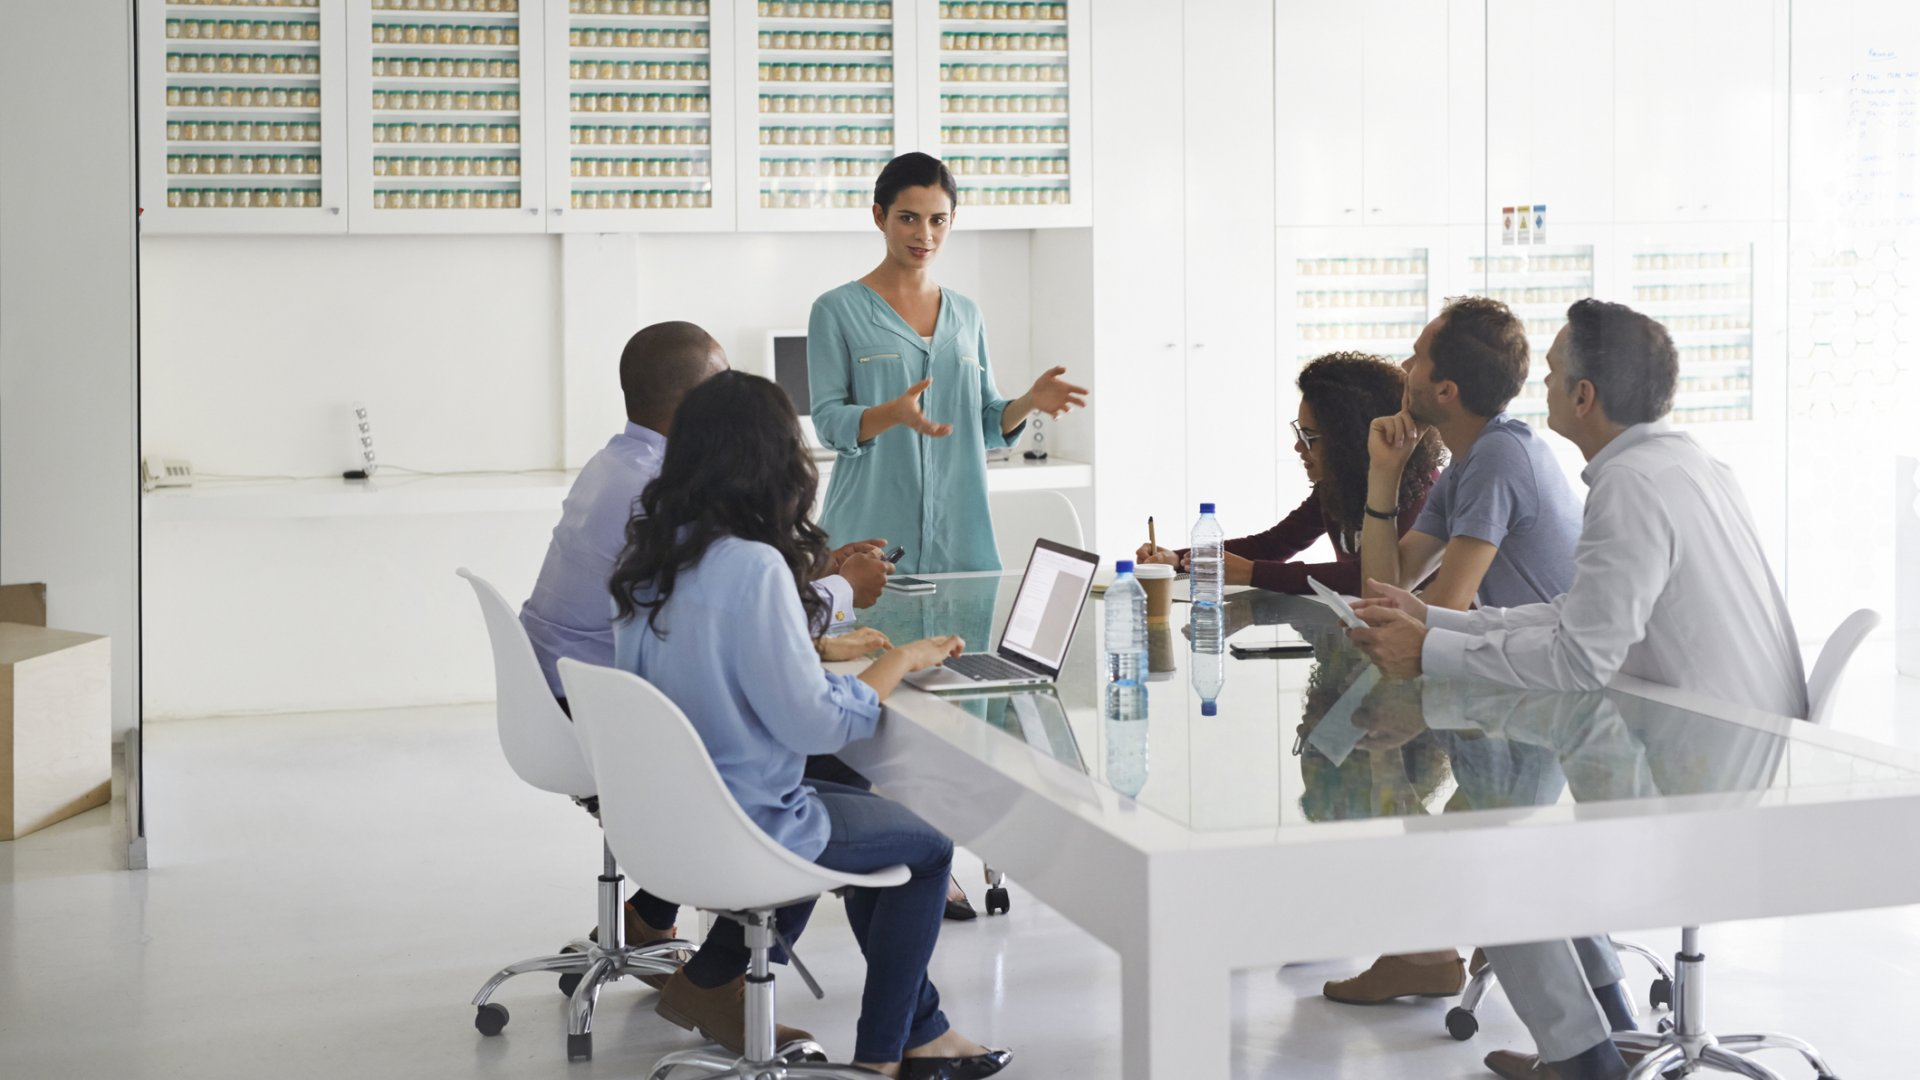 7 Key Leadership Words Your Team Needs to Hear You Say Right Now